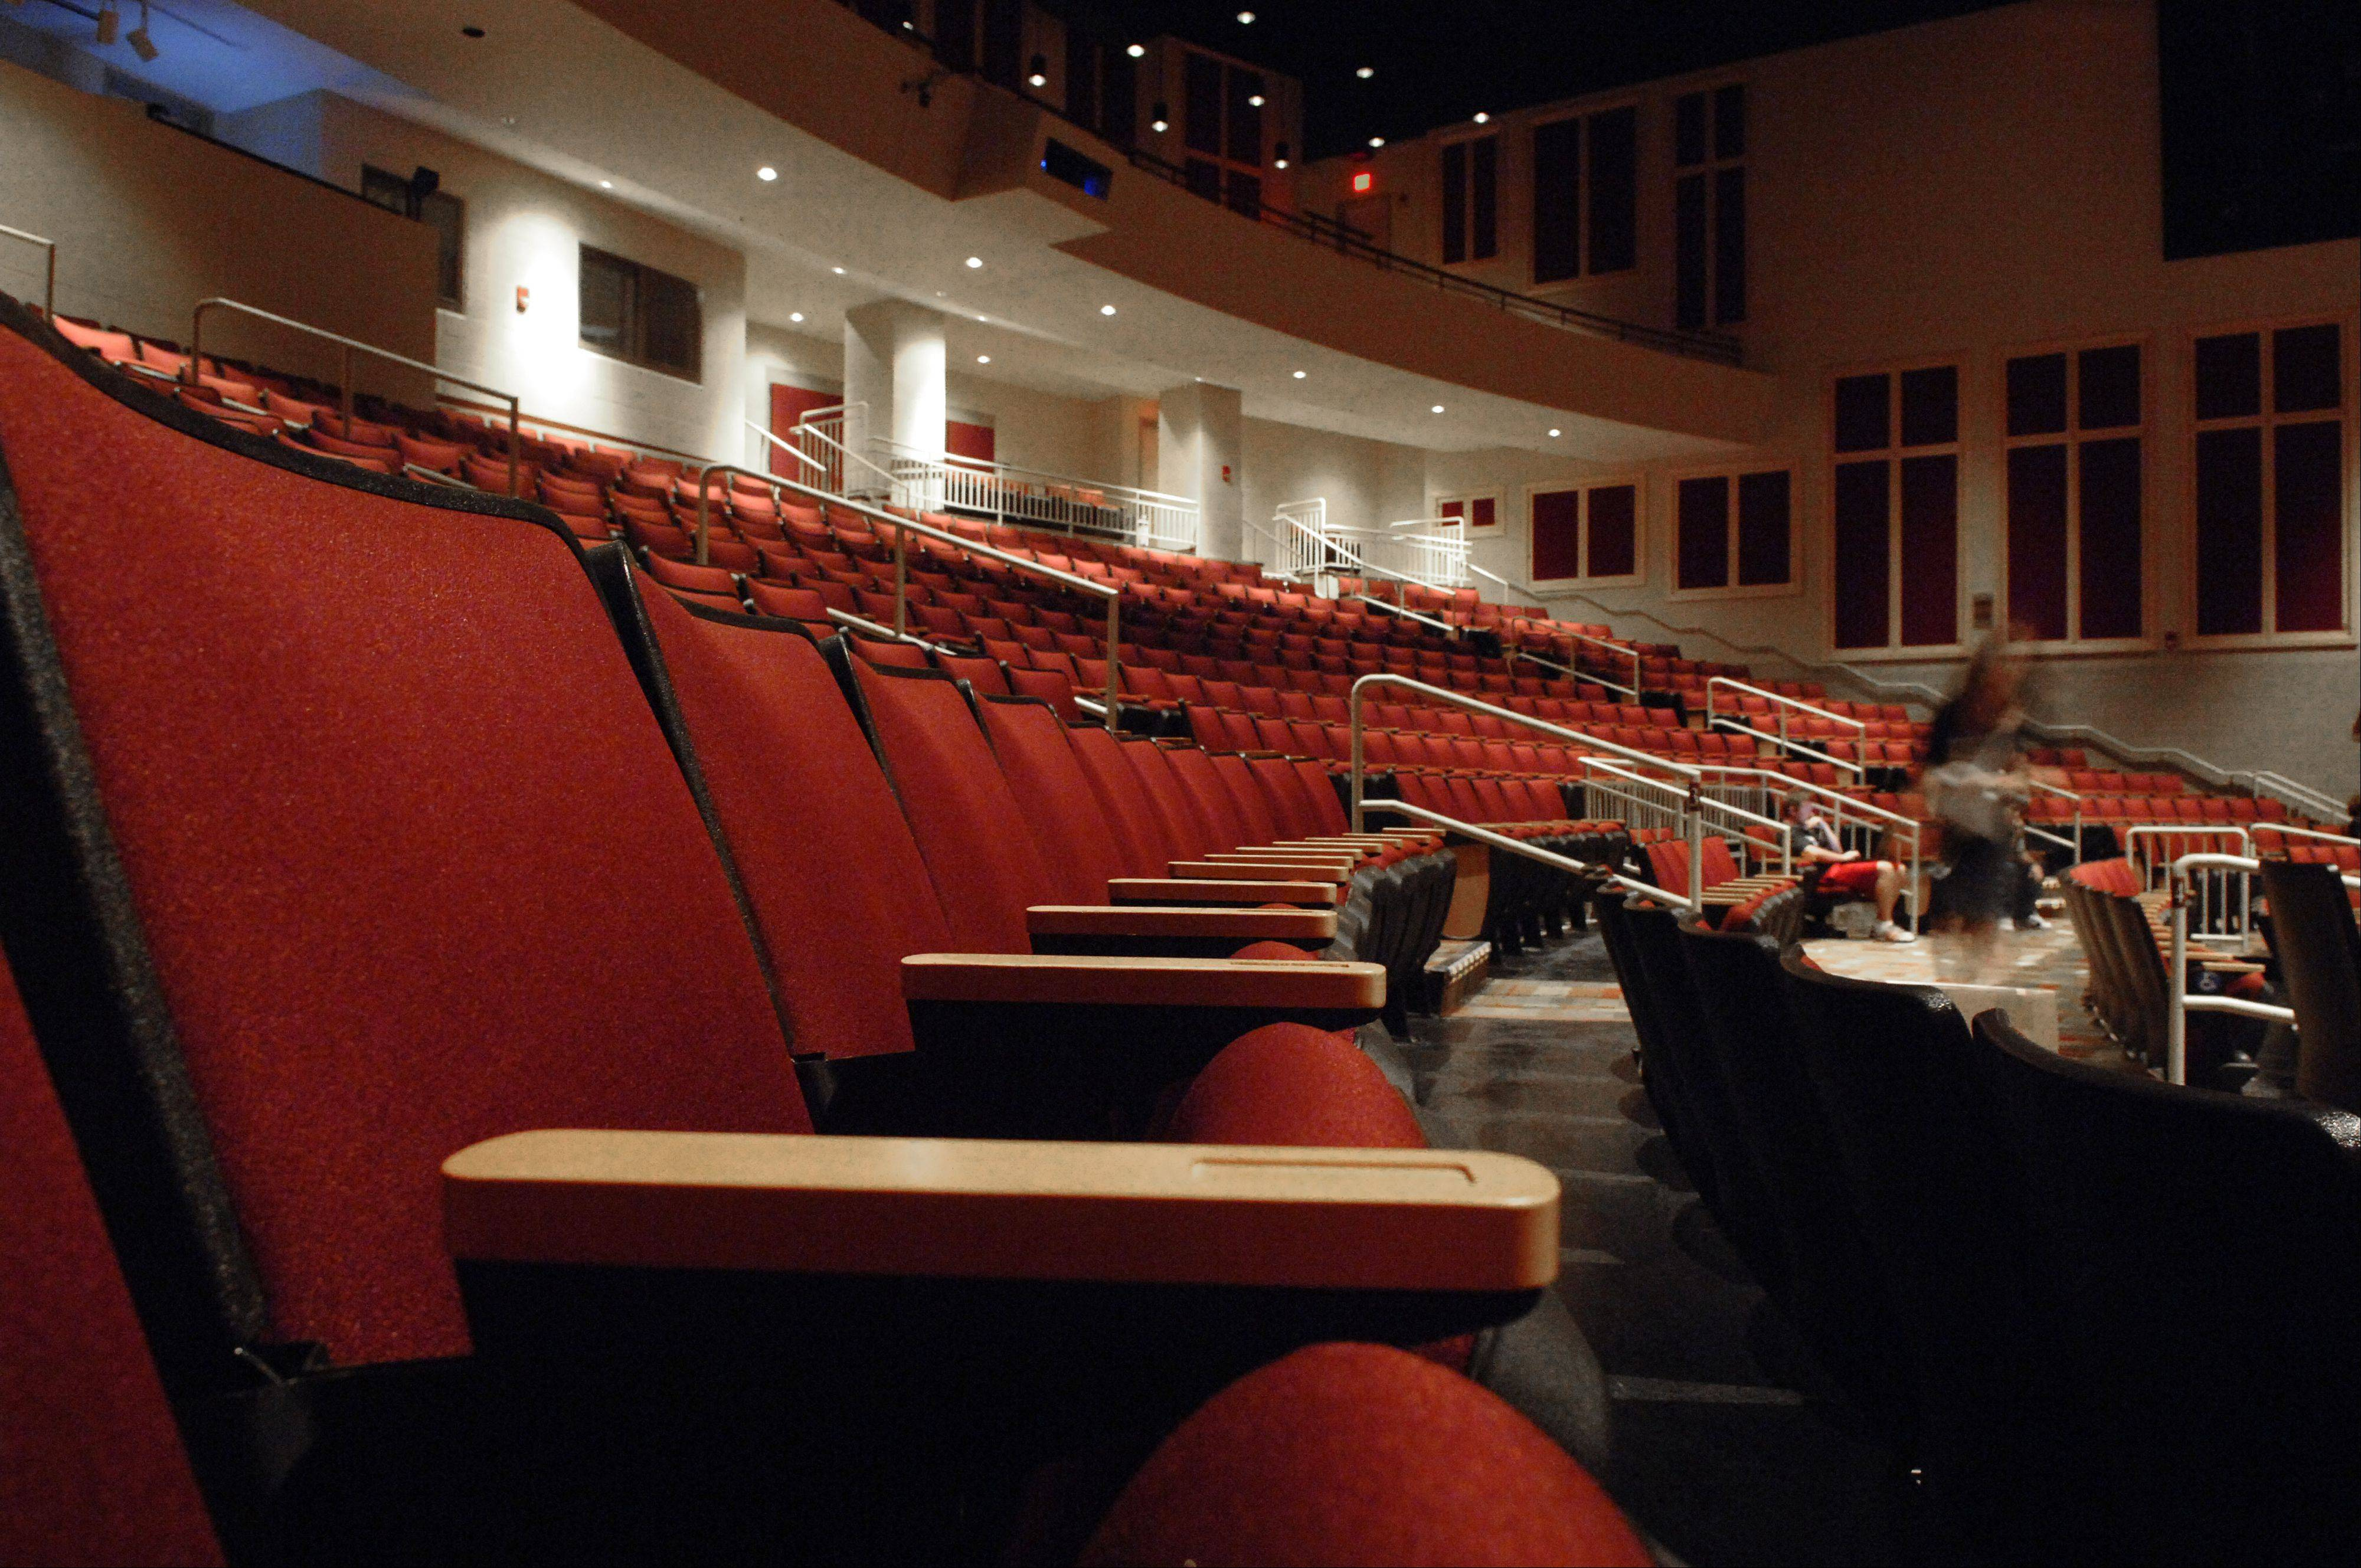 Audiences are sure to enjoy comfortable seating in the auditorium of the Batavia Fine Arts Centre.